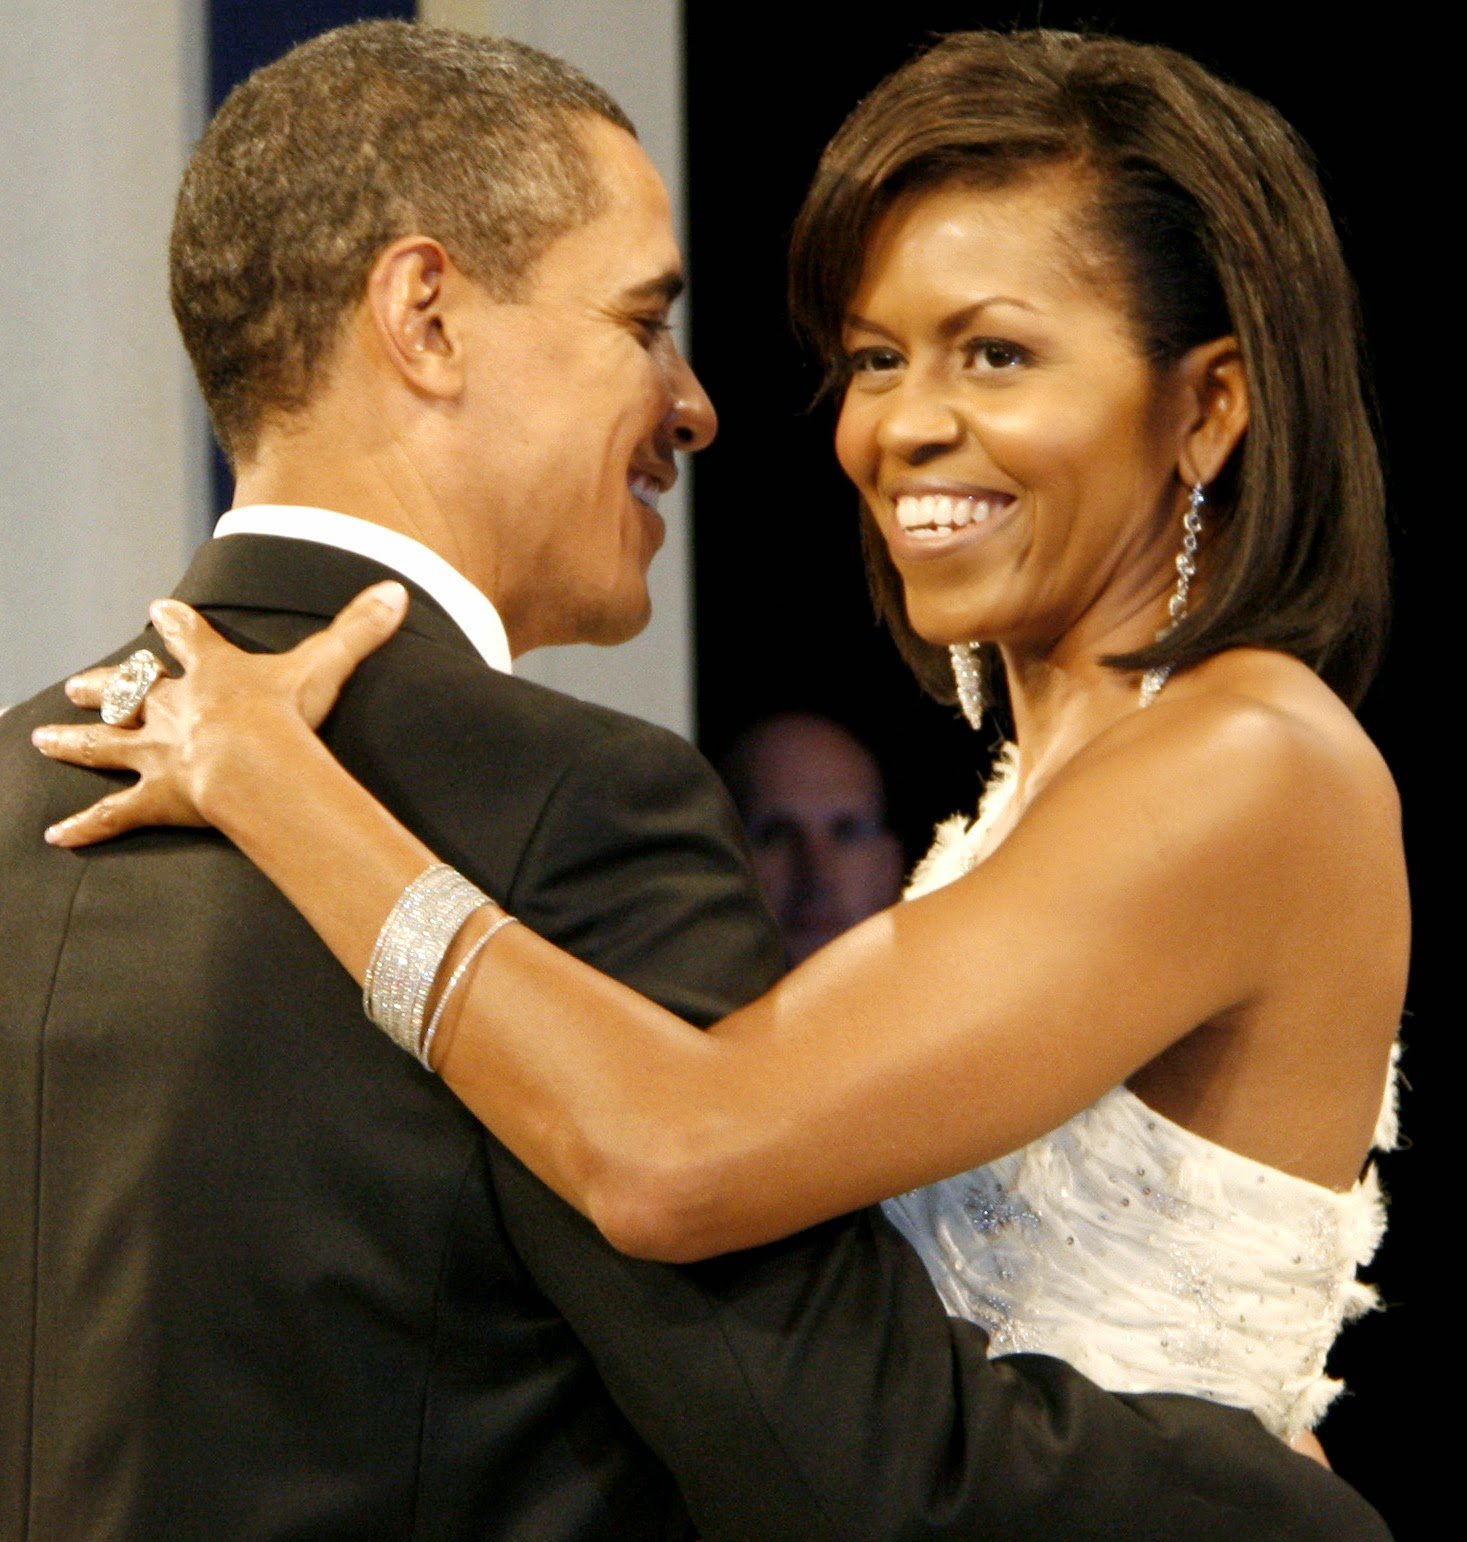 [Image: Barack_and_Michelle_Obama_at_the_Home_St...6658709900]